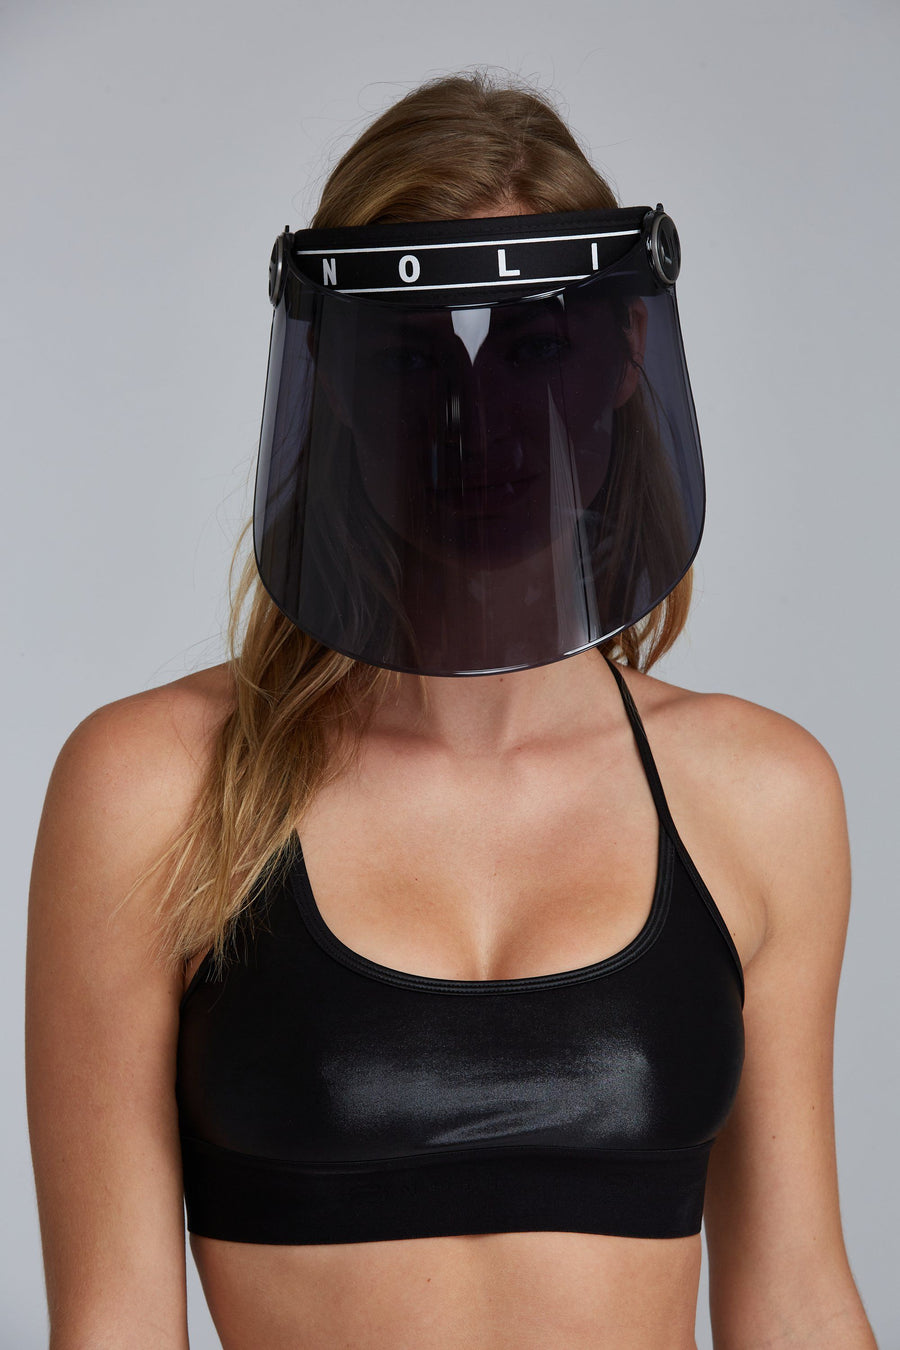 NOLI Face Shield - Black